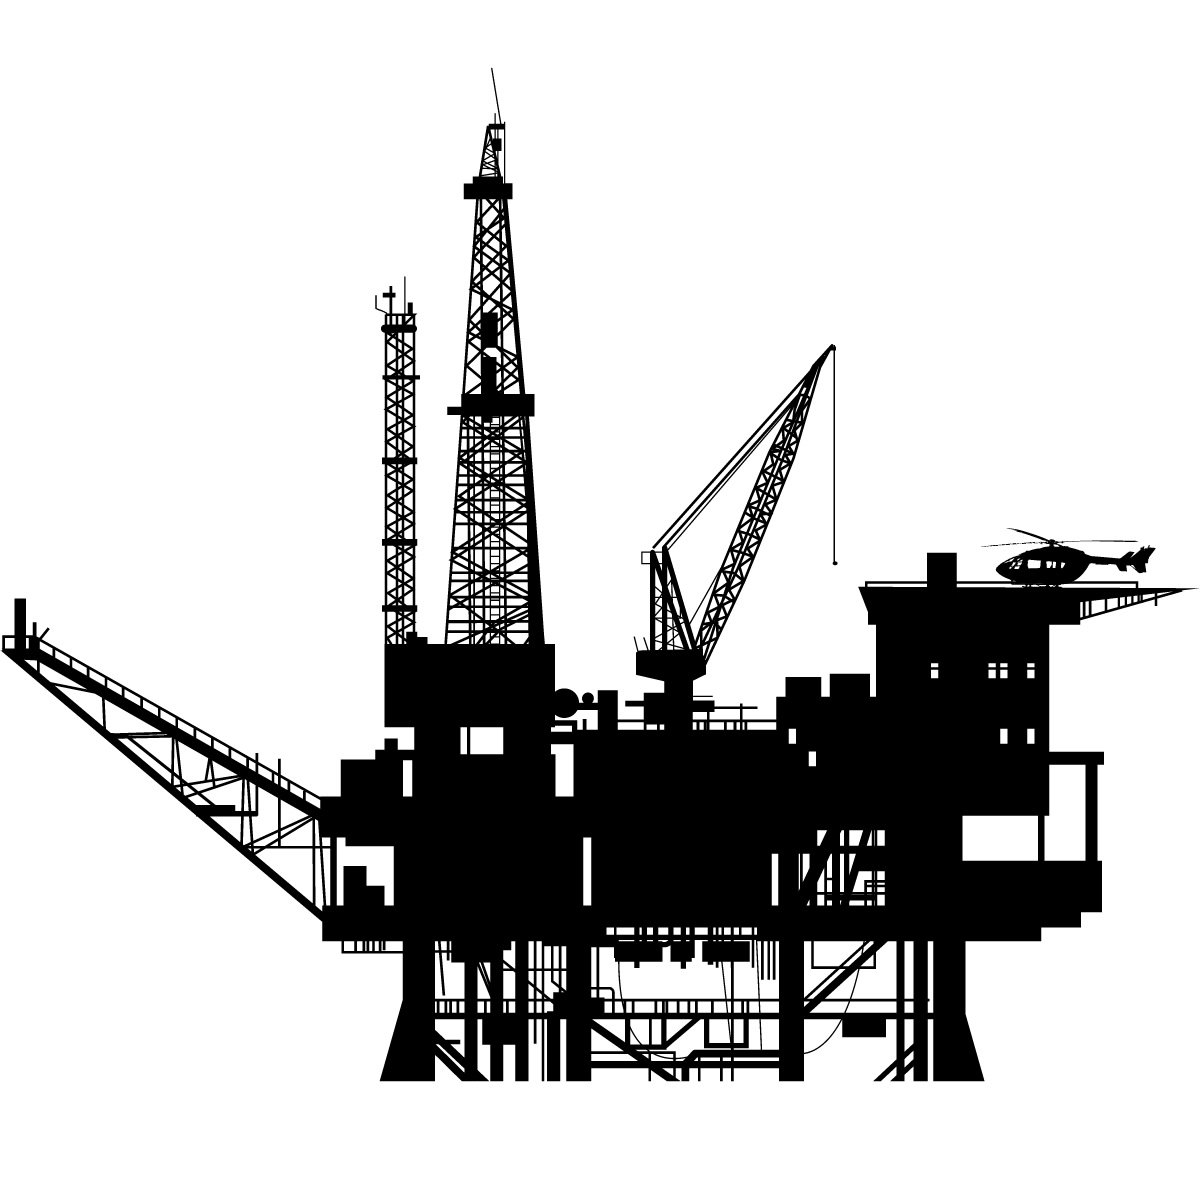 Construction Wall Stickers 12 Oil Platform Icon Images Offshore Oil Rigs Icons Oil